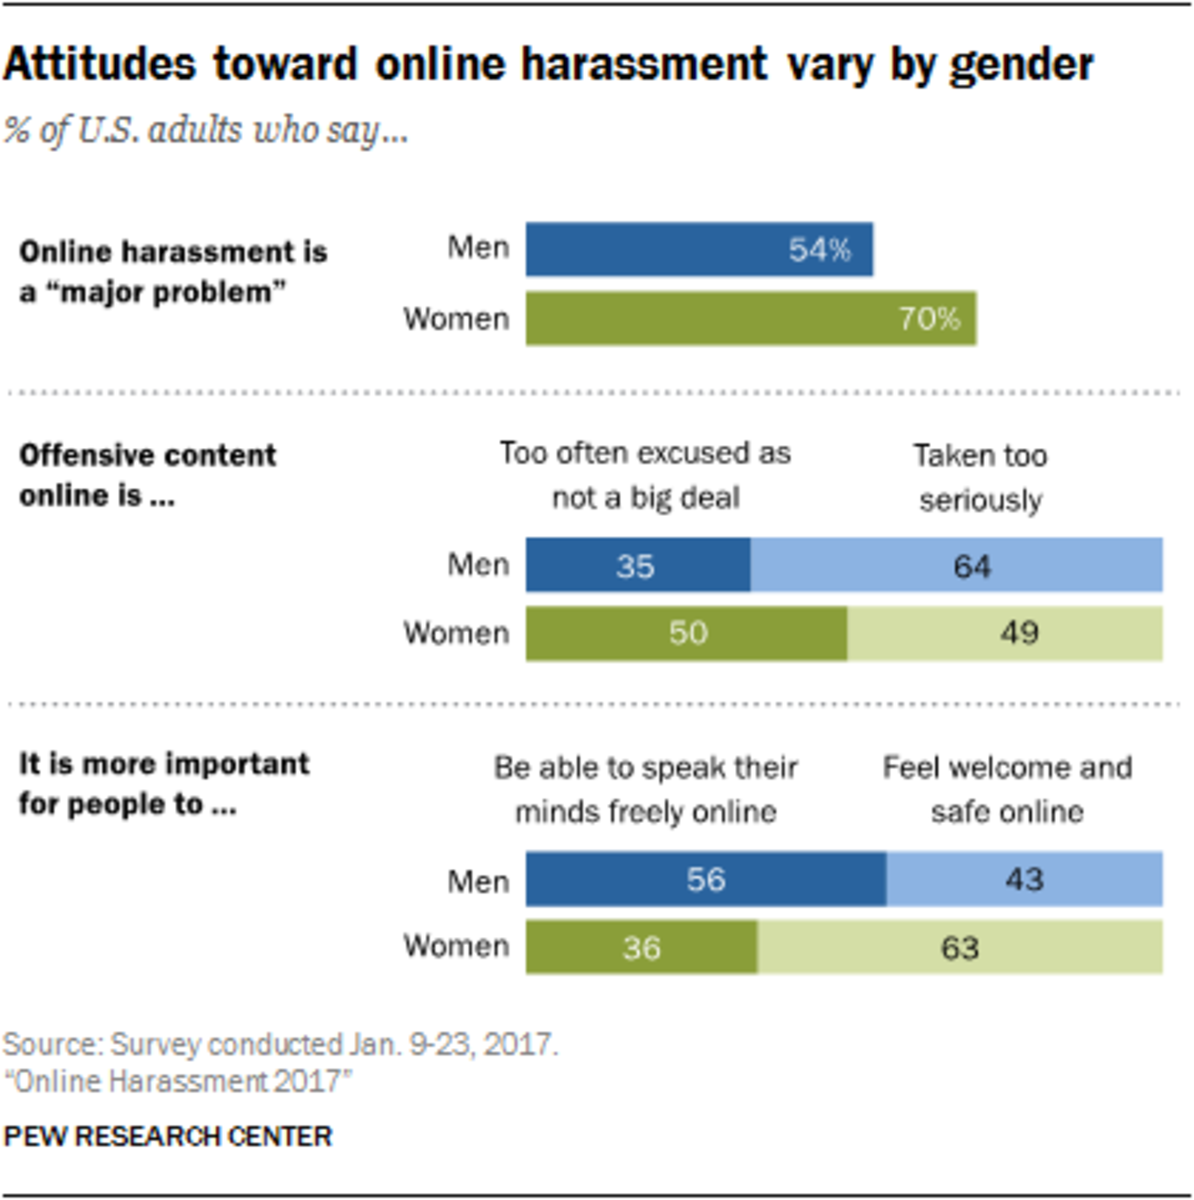 Online Harassment in 2017